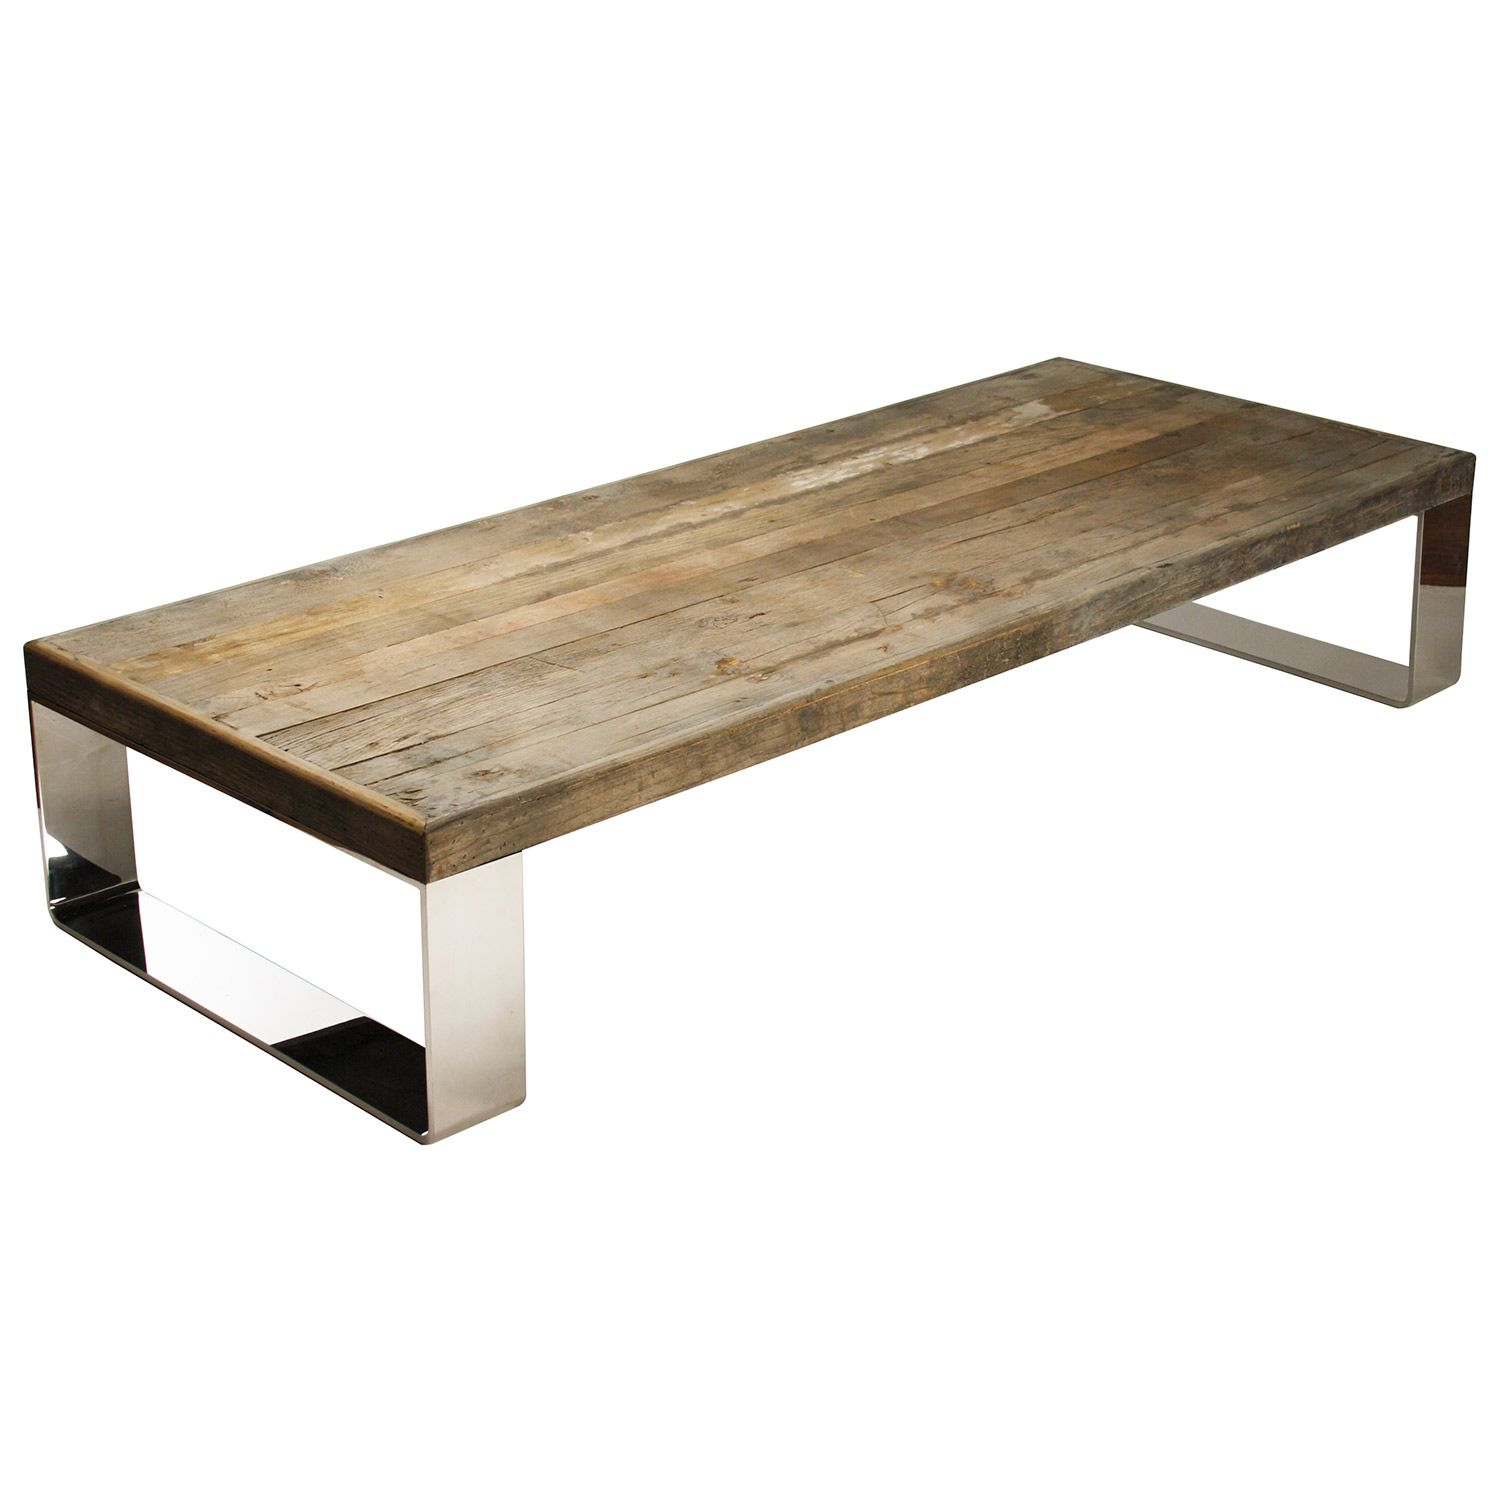 Lovely Fuse Modern Design And Simple Rustic Charm With The Weathered Darren Coffee  Table. Contemporary Stainless Steel Legs Contrast With The Rectangular  Tableu0027s ...